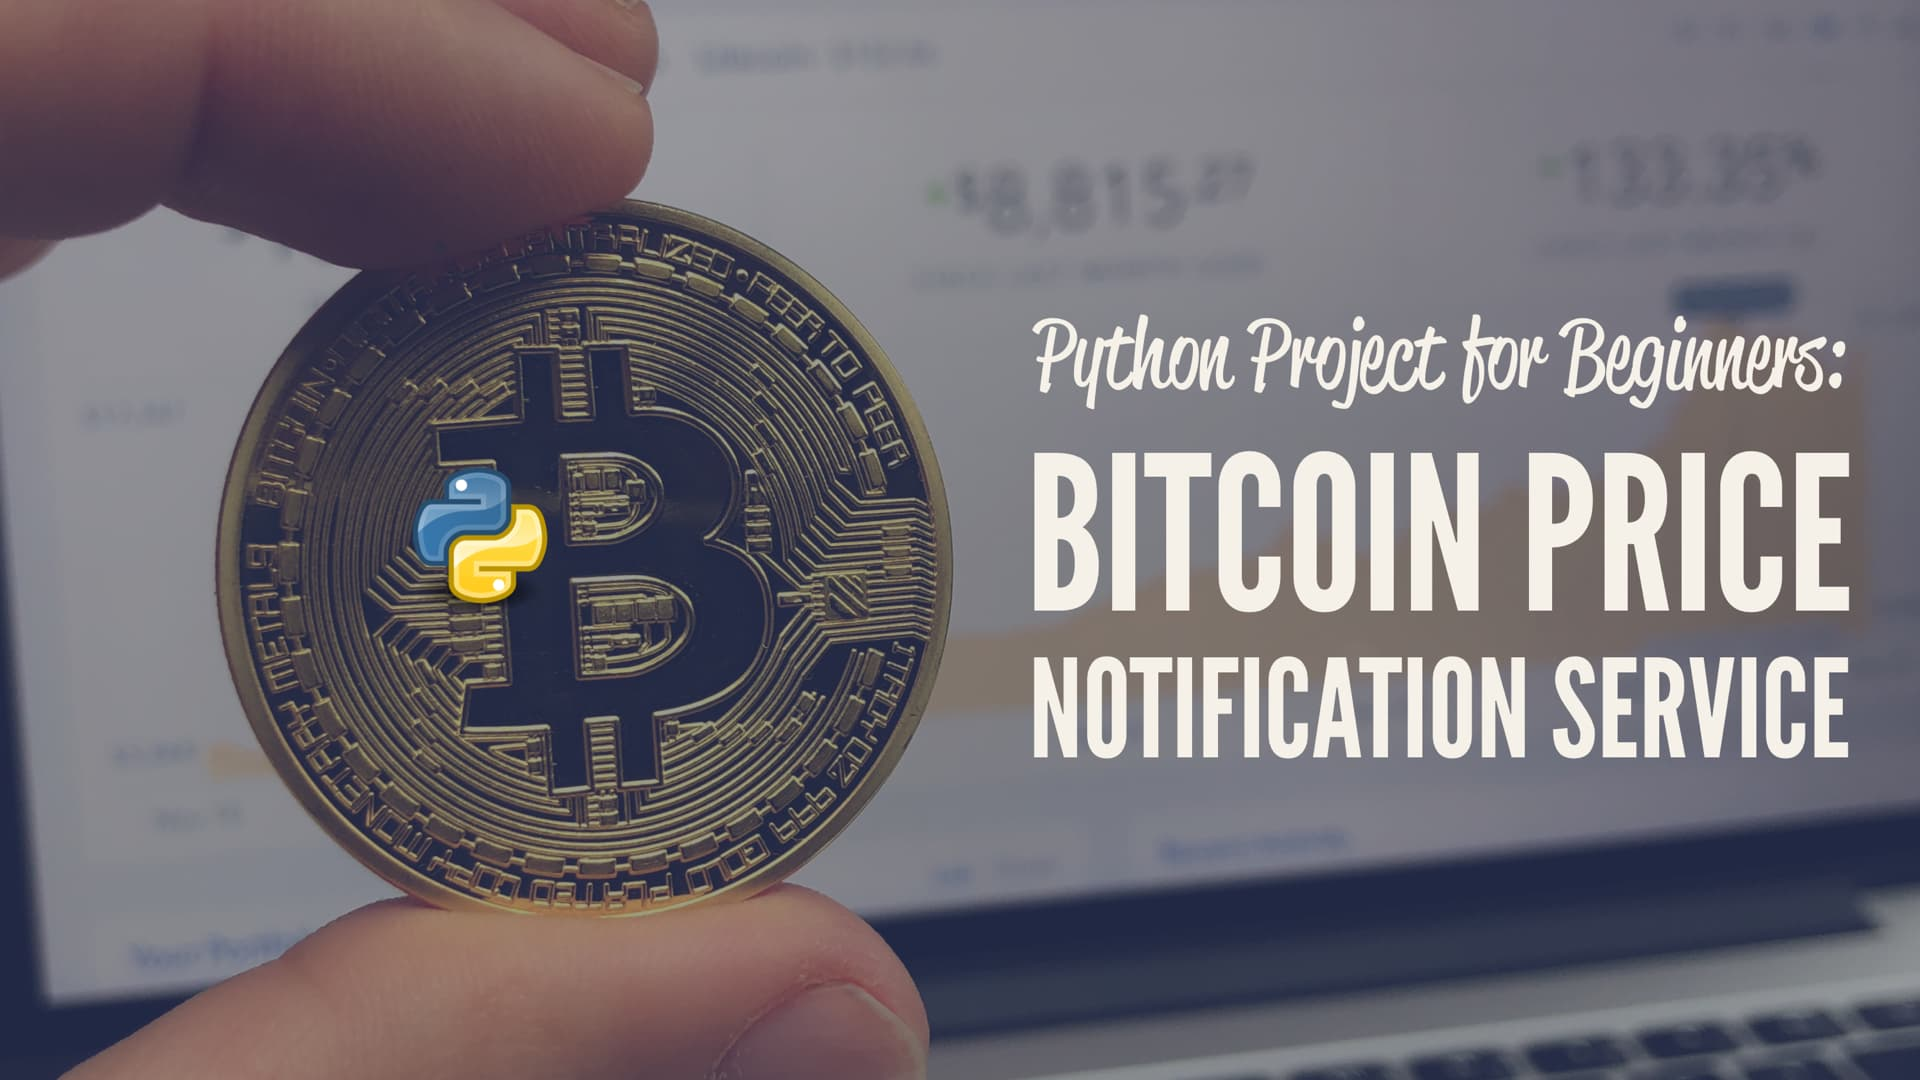 Python Project for Beginners: Bitcoin Price Notification Service